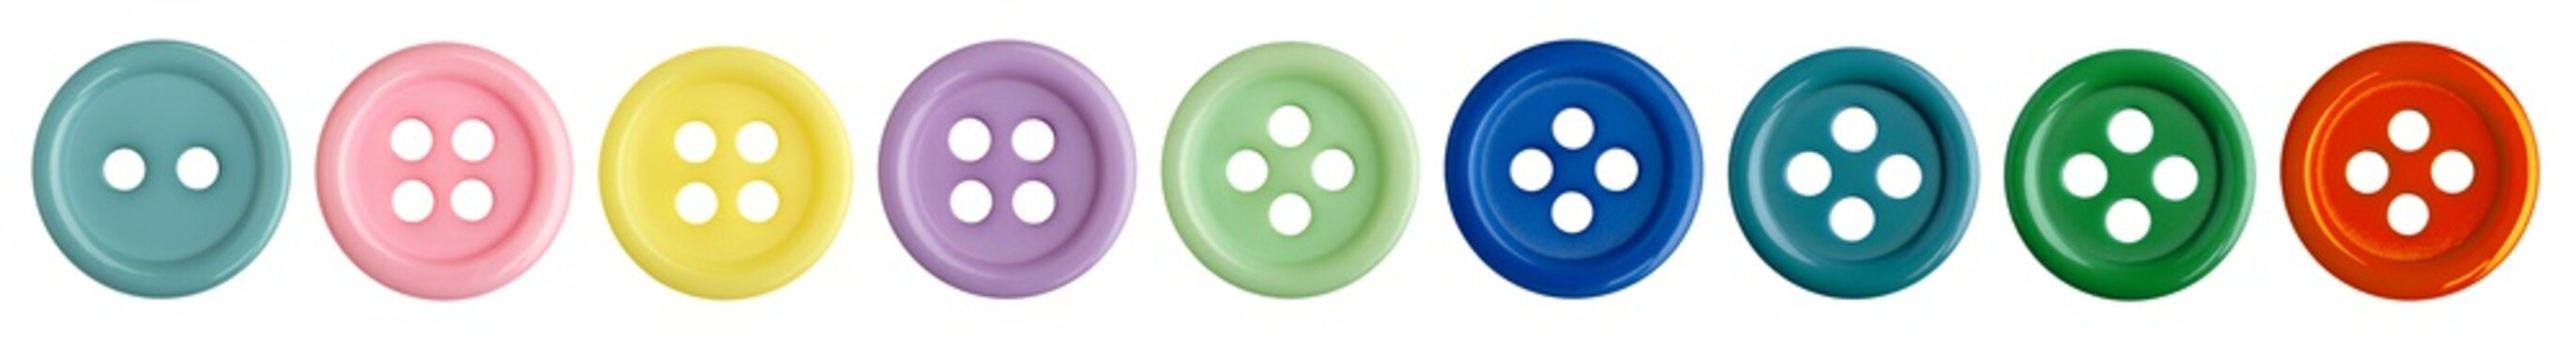 Set of sewing buttons for fashion clothes isolated on white background. Colored fashion buttons collection for your fashion design.